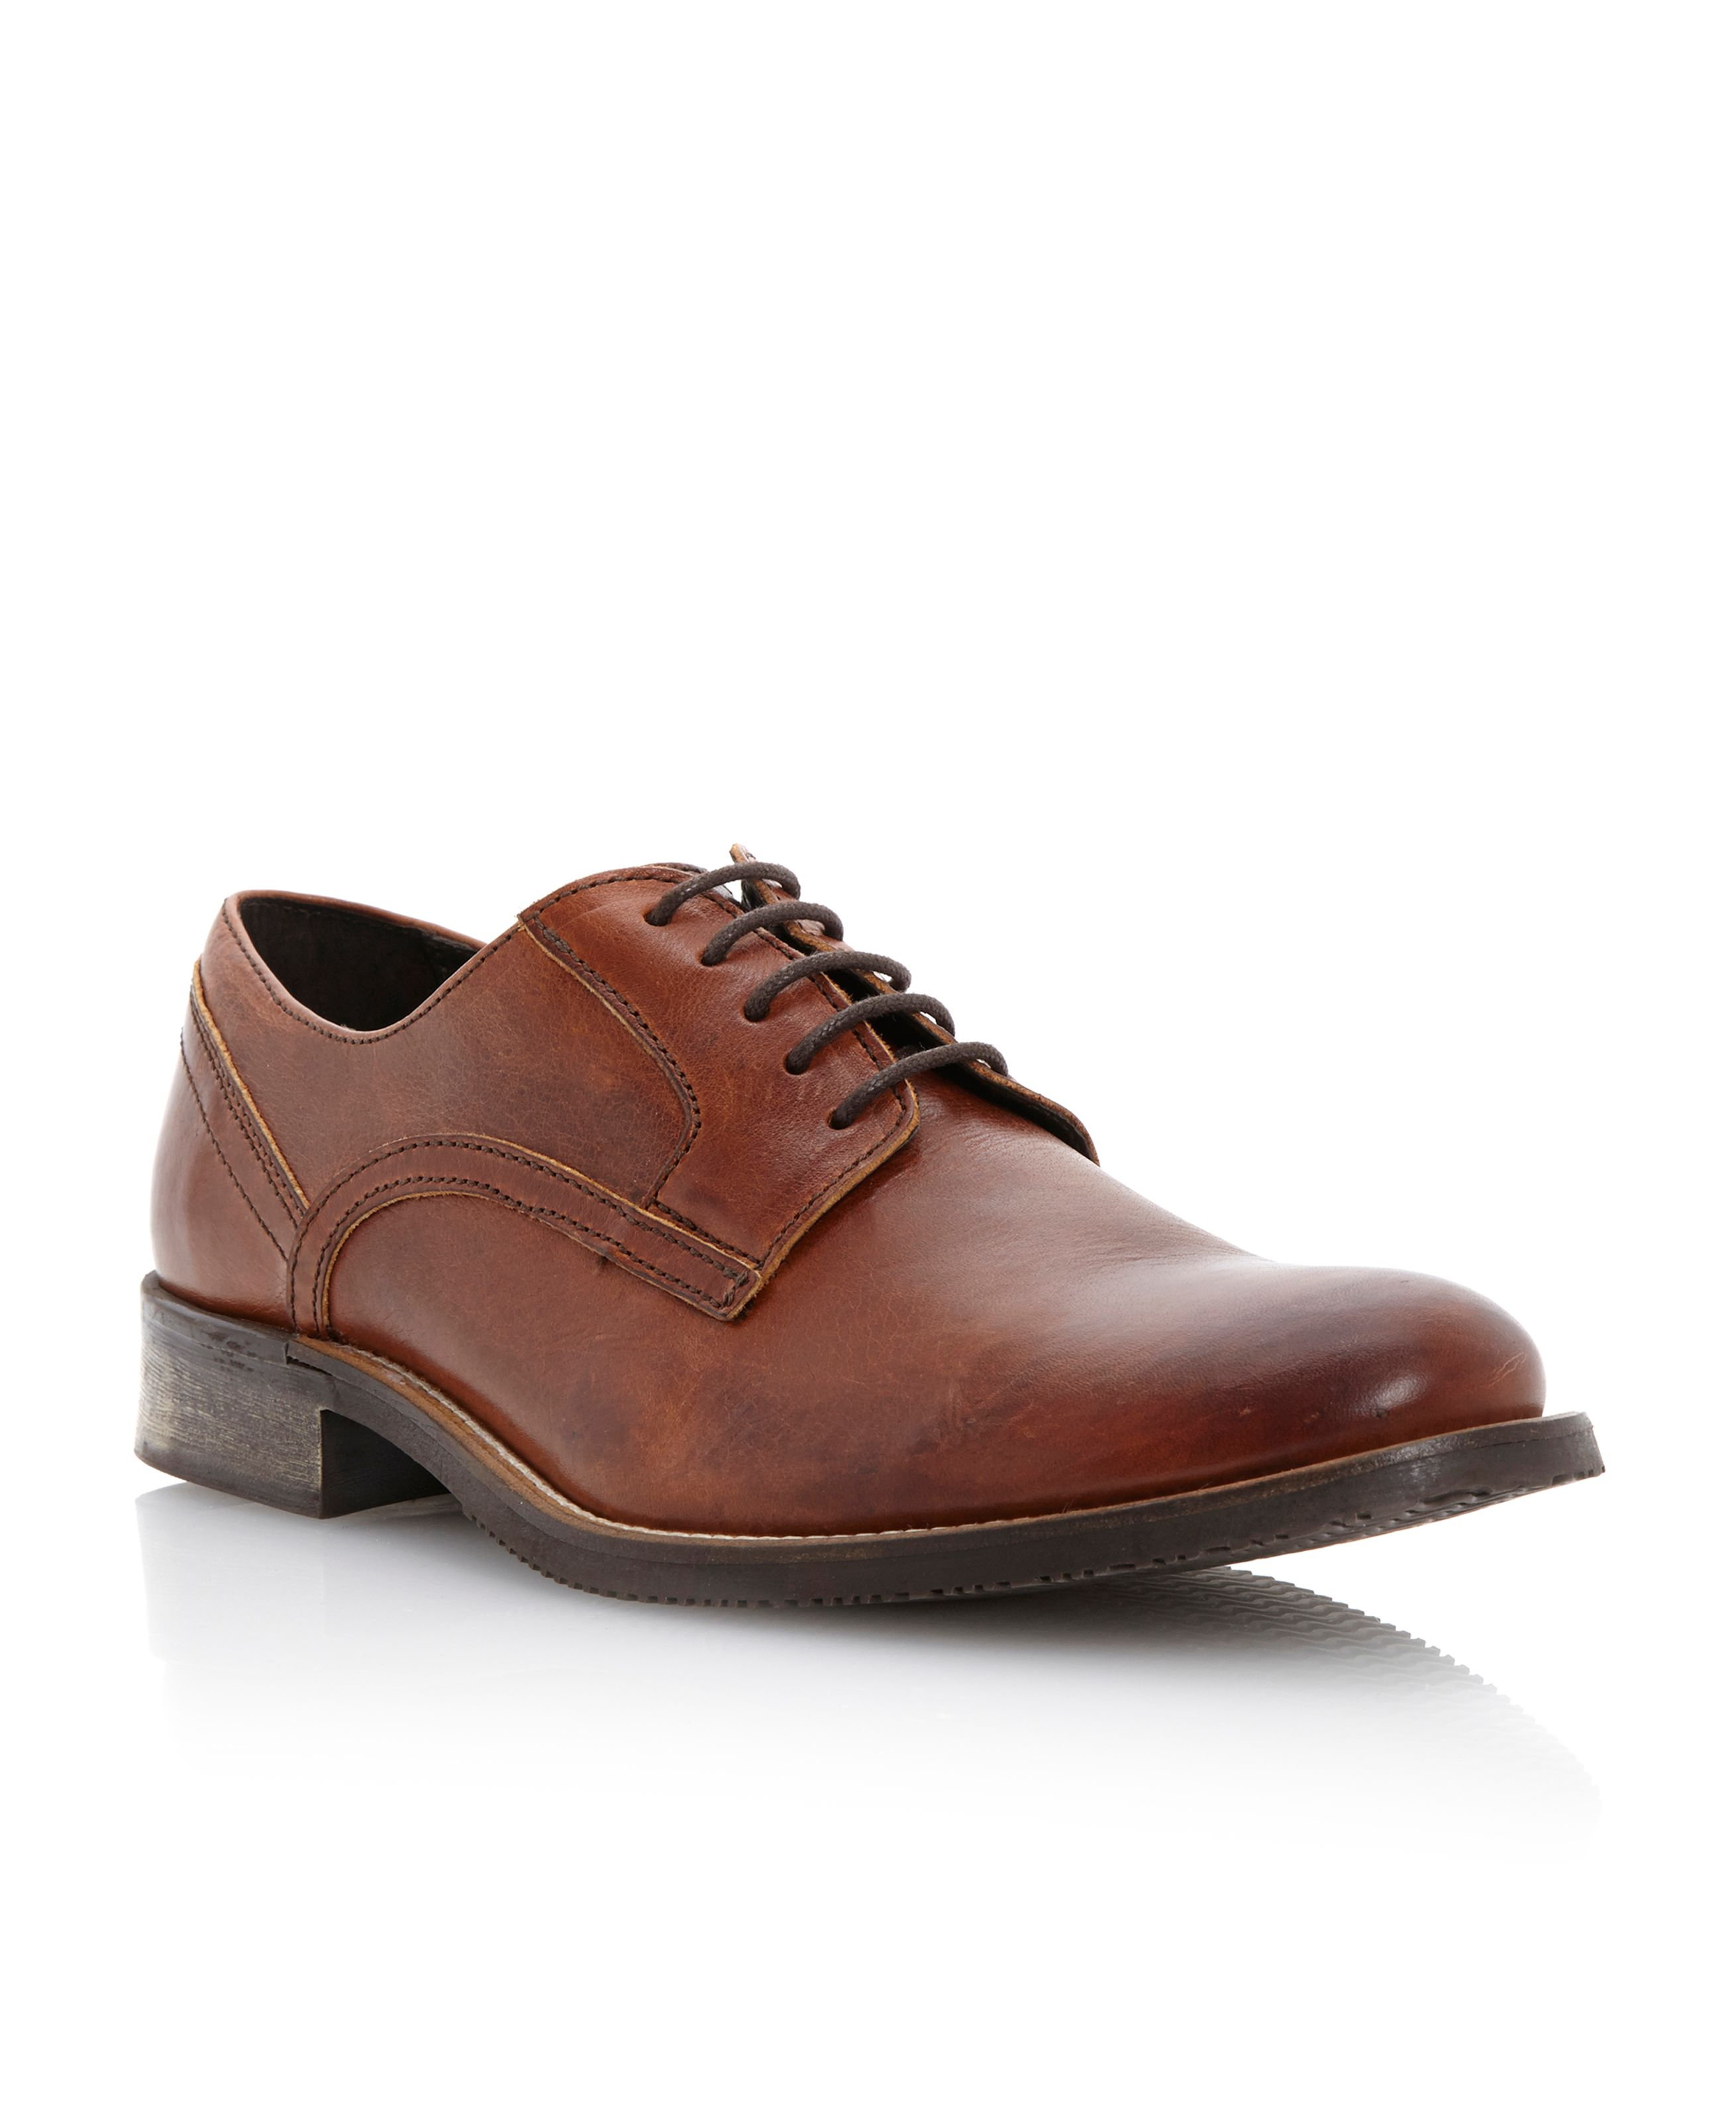 Belsit plain round toe gibson shoes